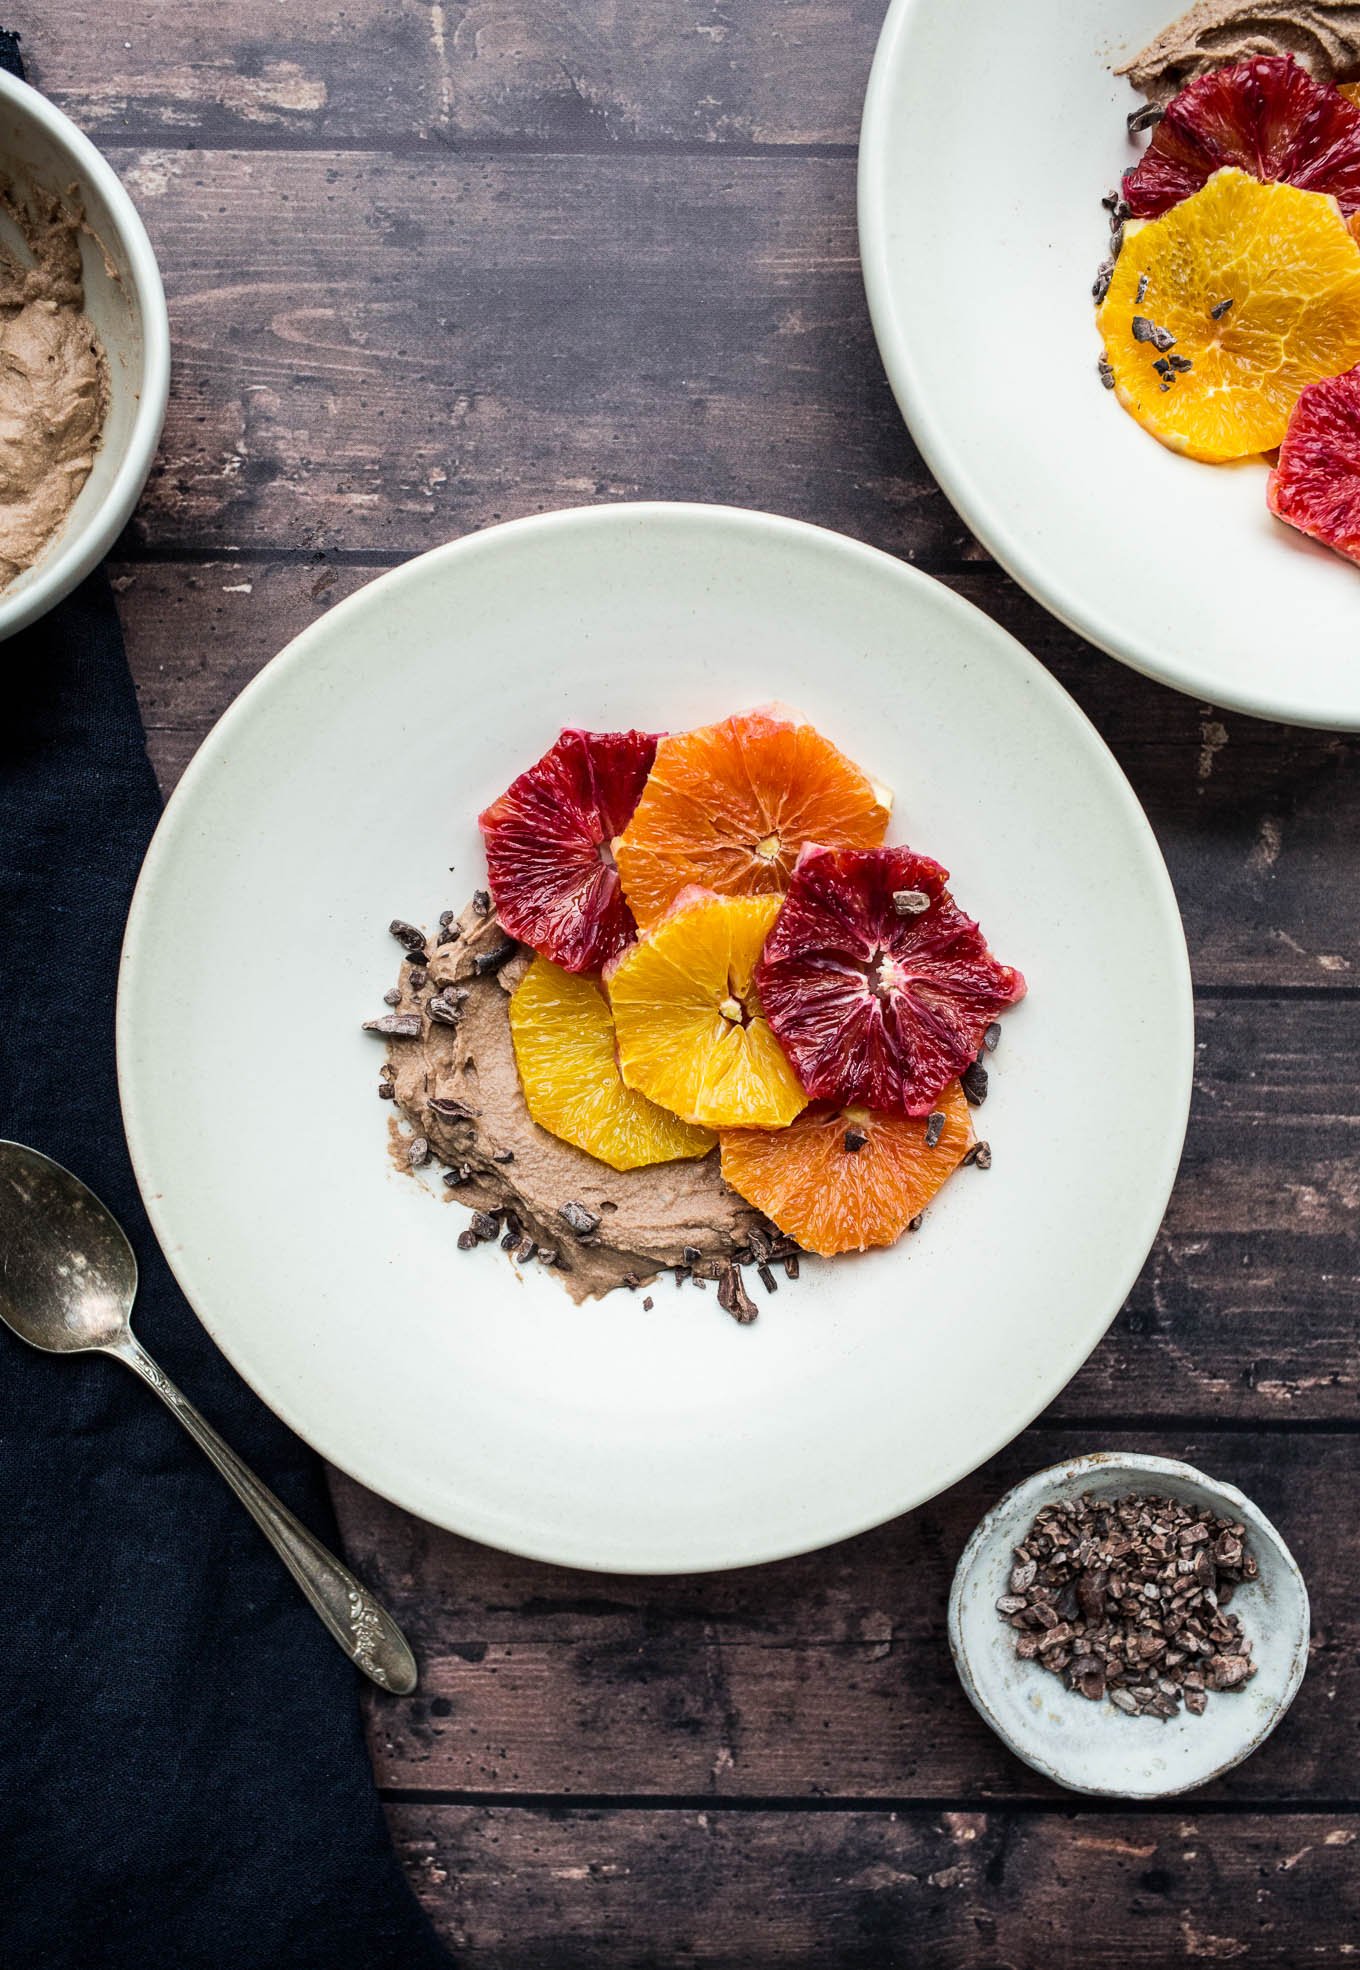 Winter Citrus in bowls